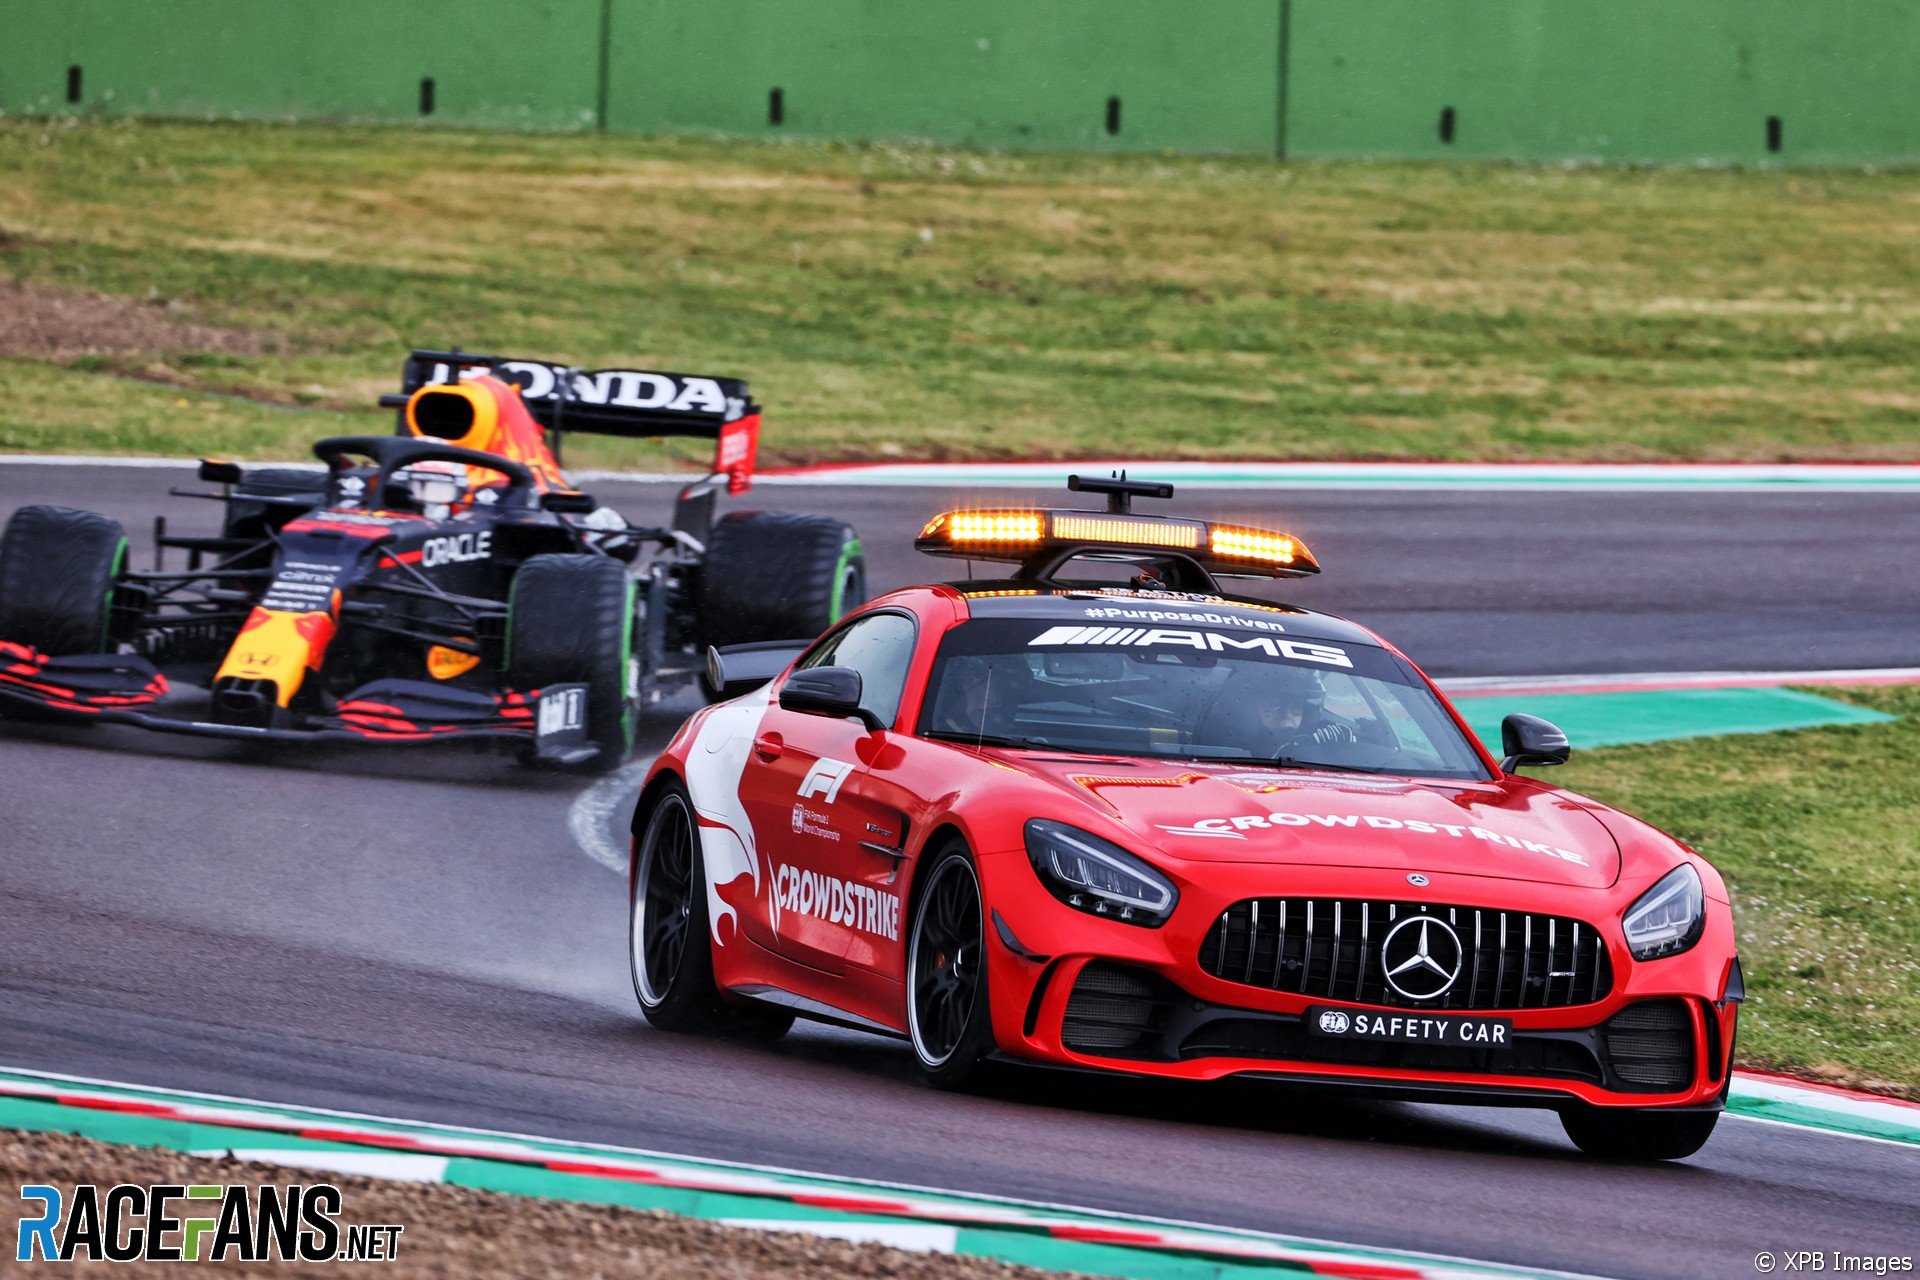 Safety Car, Imola, 2021